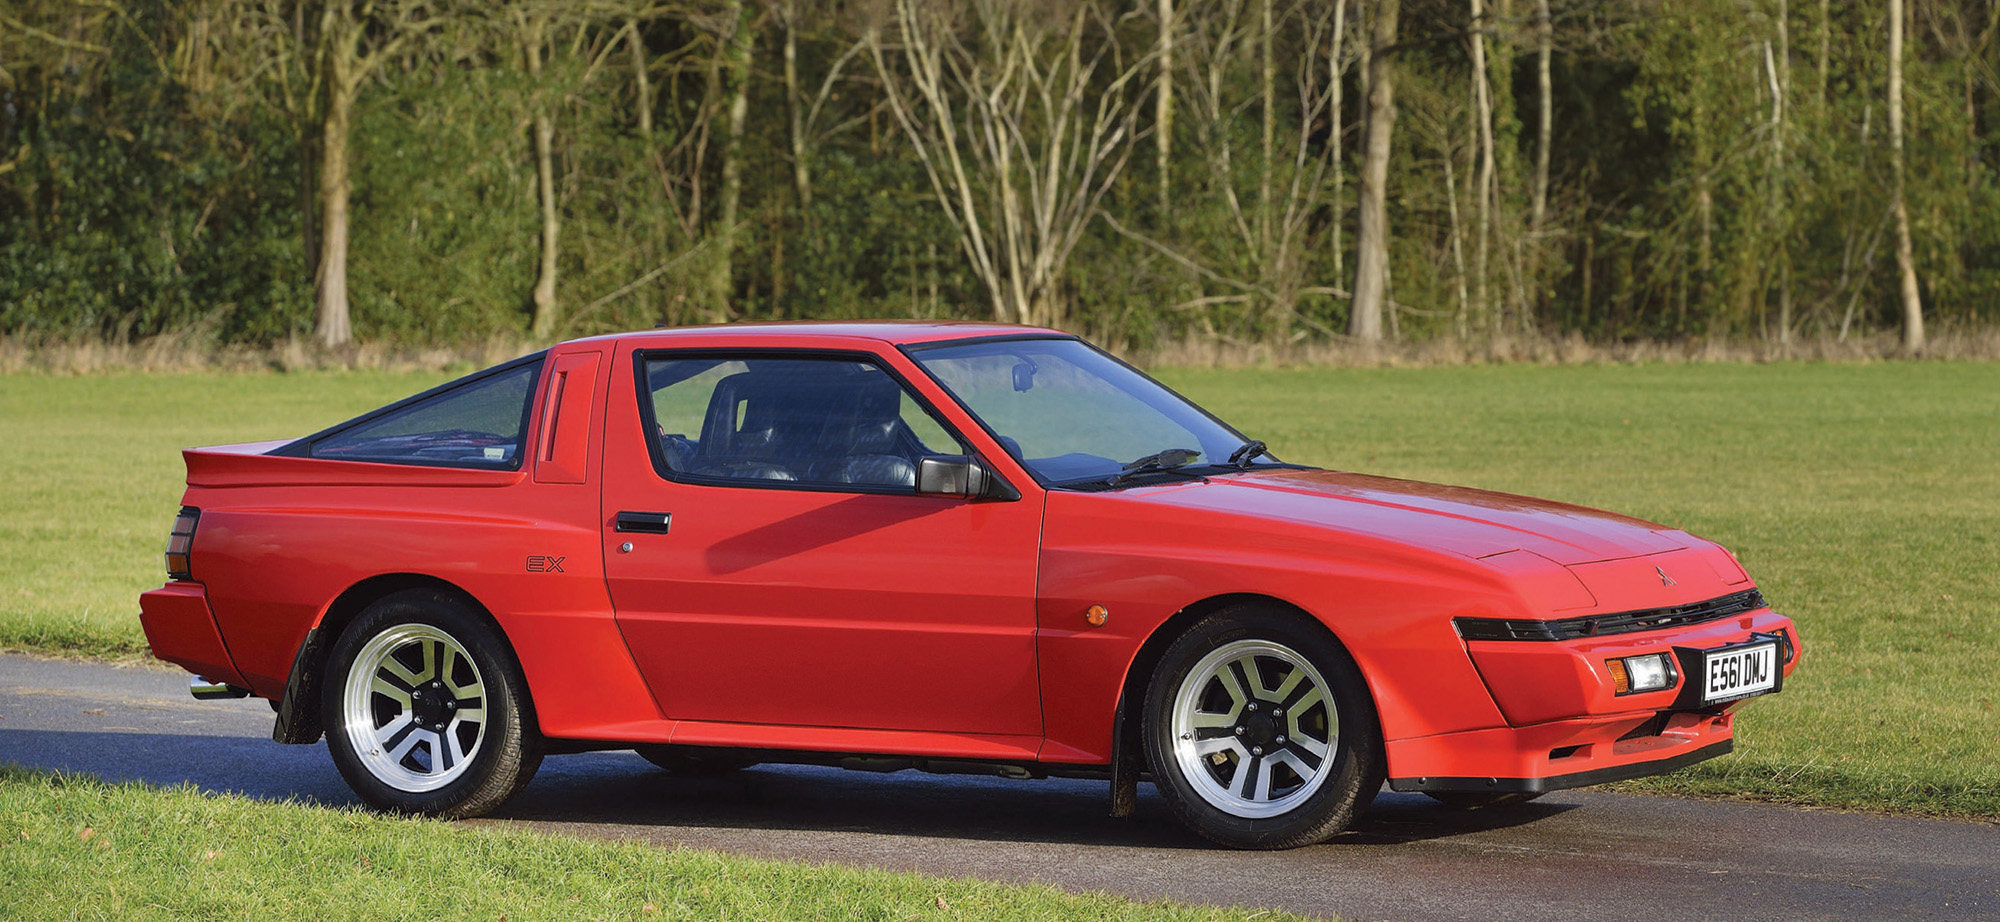 New Chrysler 300 >> Vintage views: Mitsubishi Starion ESI-R and Chrysler Conquest TSI | Articles | Grassroots ...